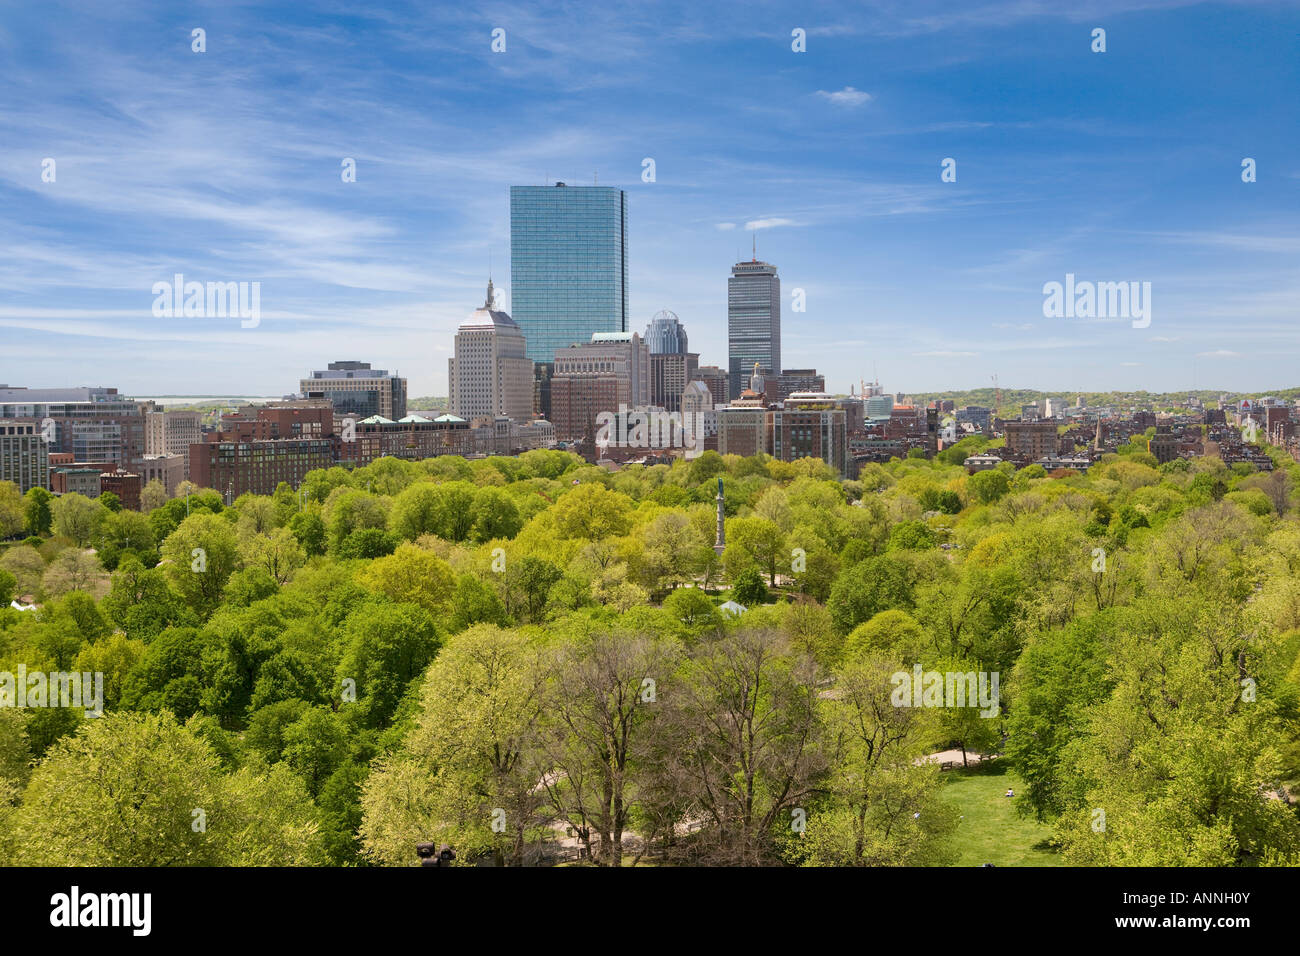 USA Massachusetts Boston elavated vue sur la ville de Boston common Photo Stock